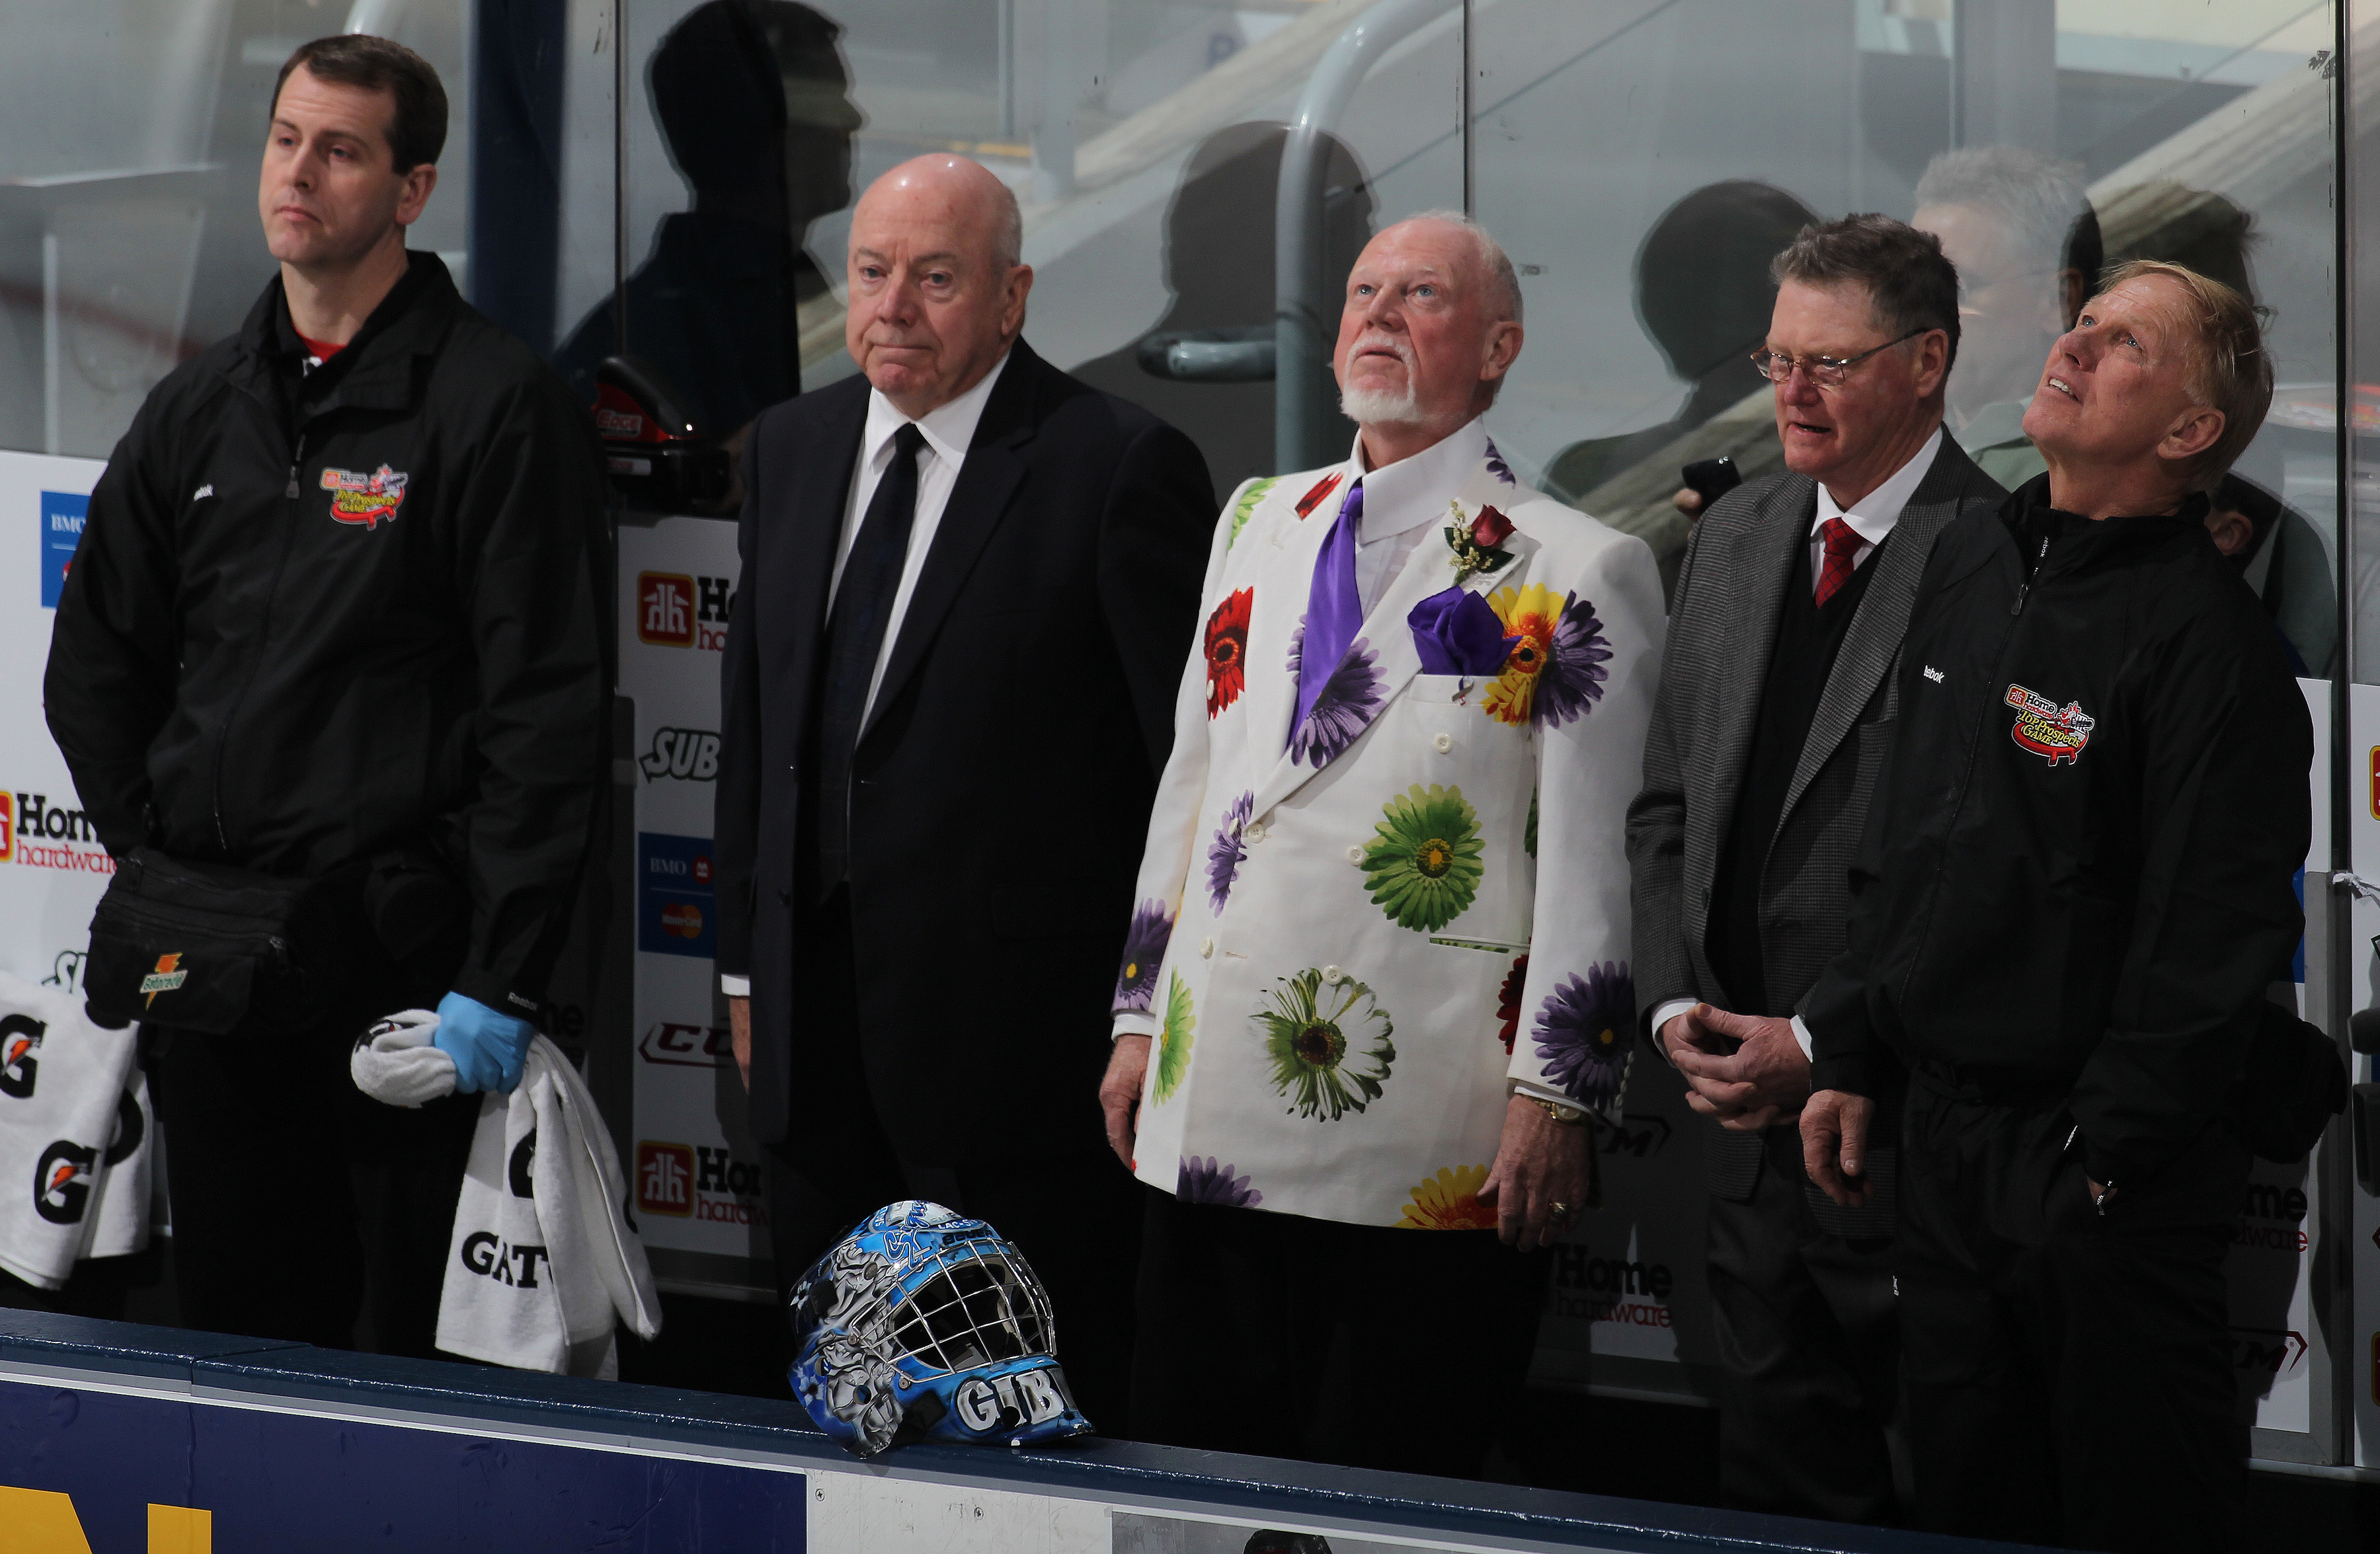 TORONTO, CAN - JANUARY 19:  Coaches Don Cherry, Brian Kilrea, and Bert O'Brien of Team Cherry watch opeing ceremonies prior to playing against Team Orr in the 2011 Home Hardware Top Prospects game on January 19, 2011 at the Air Canada Centre in Toronto, C